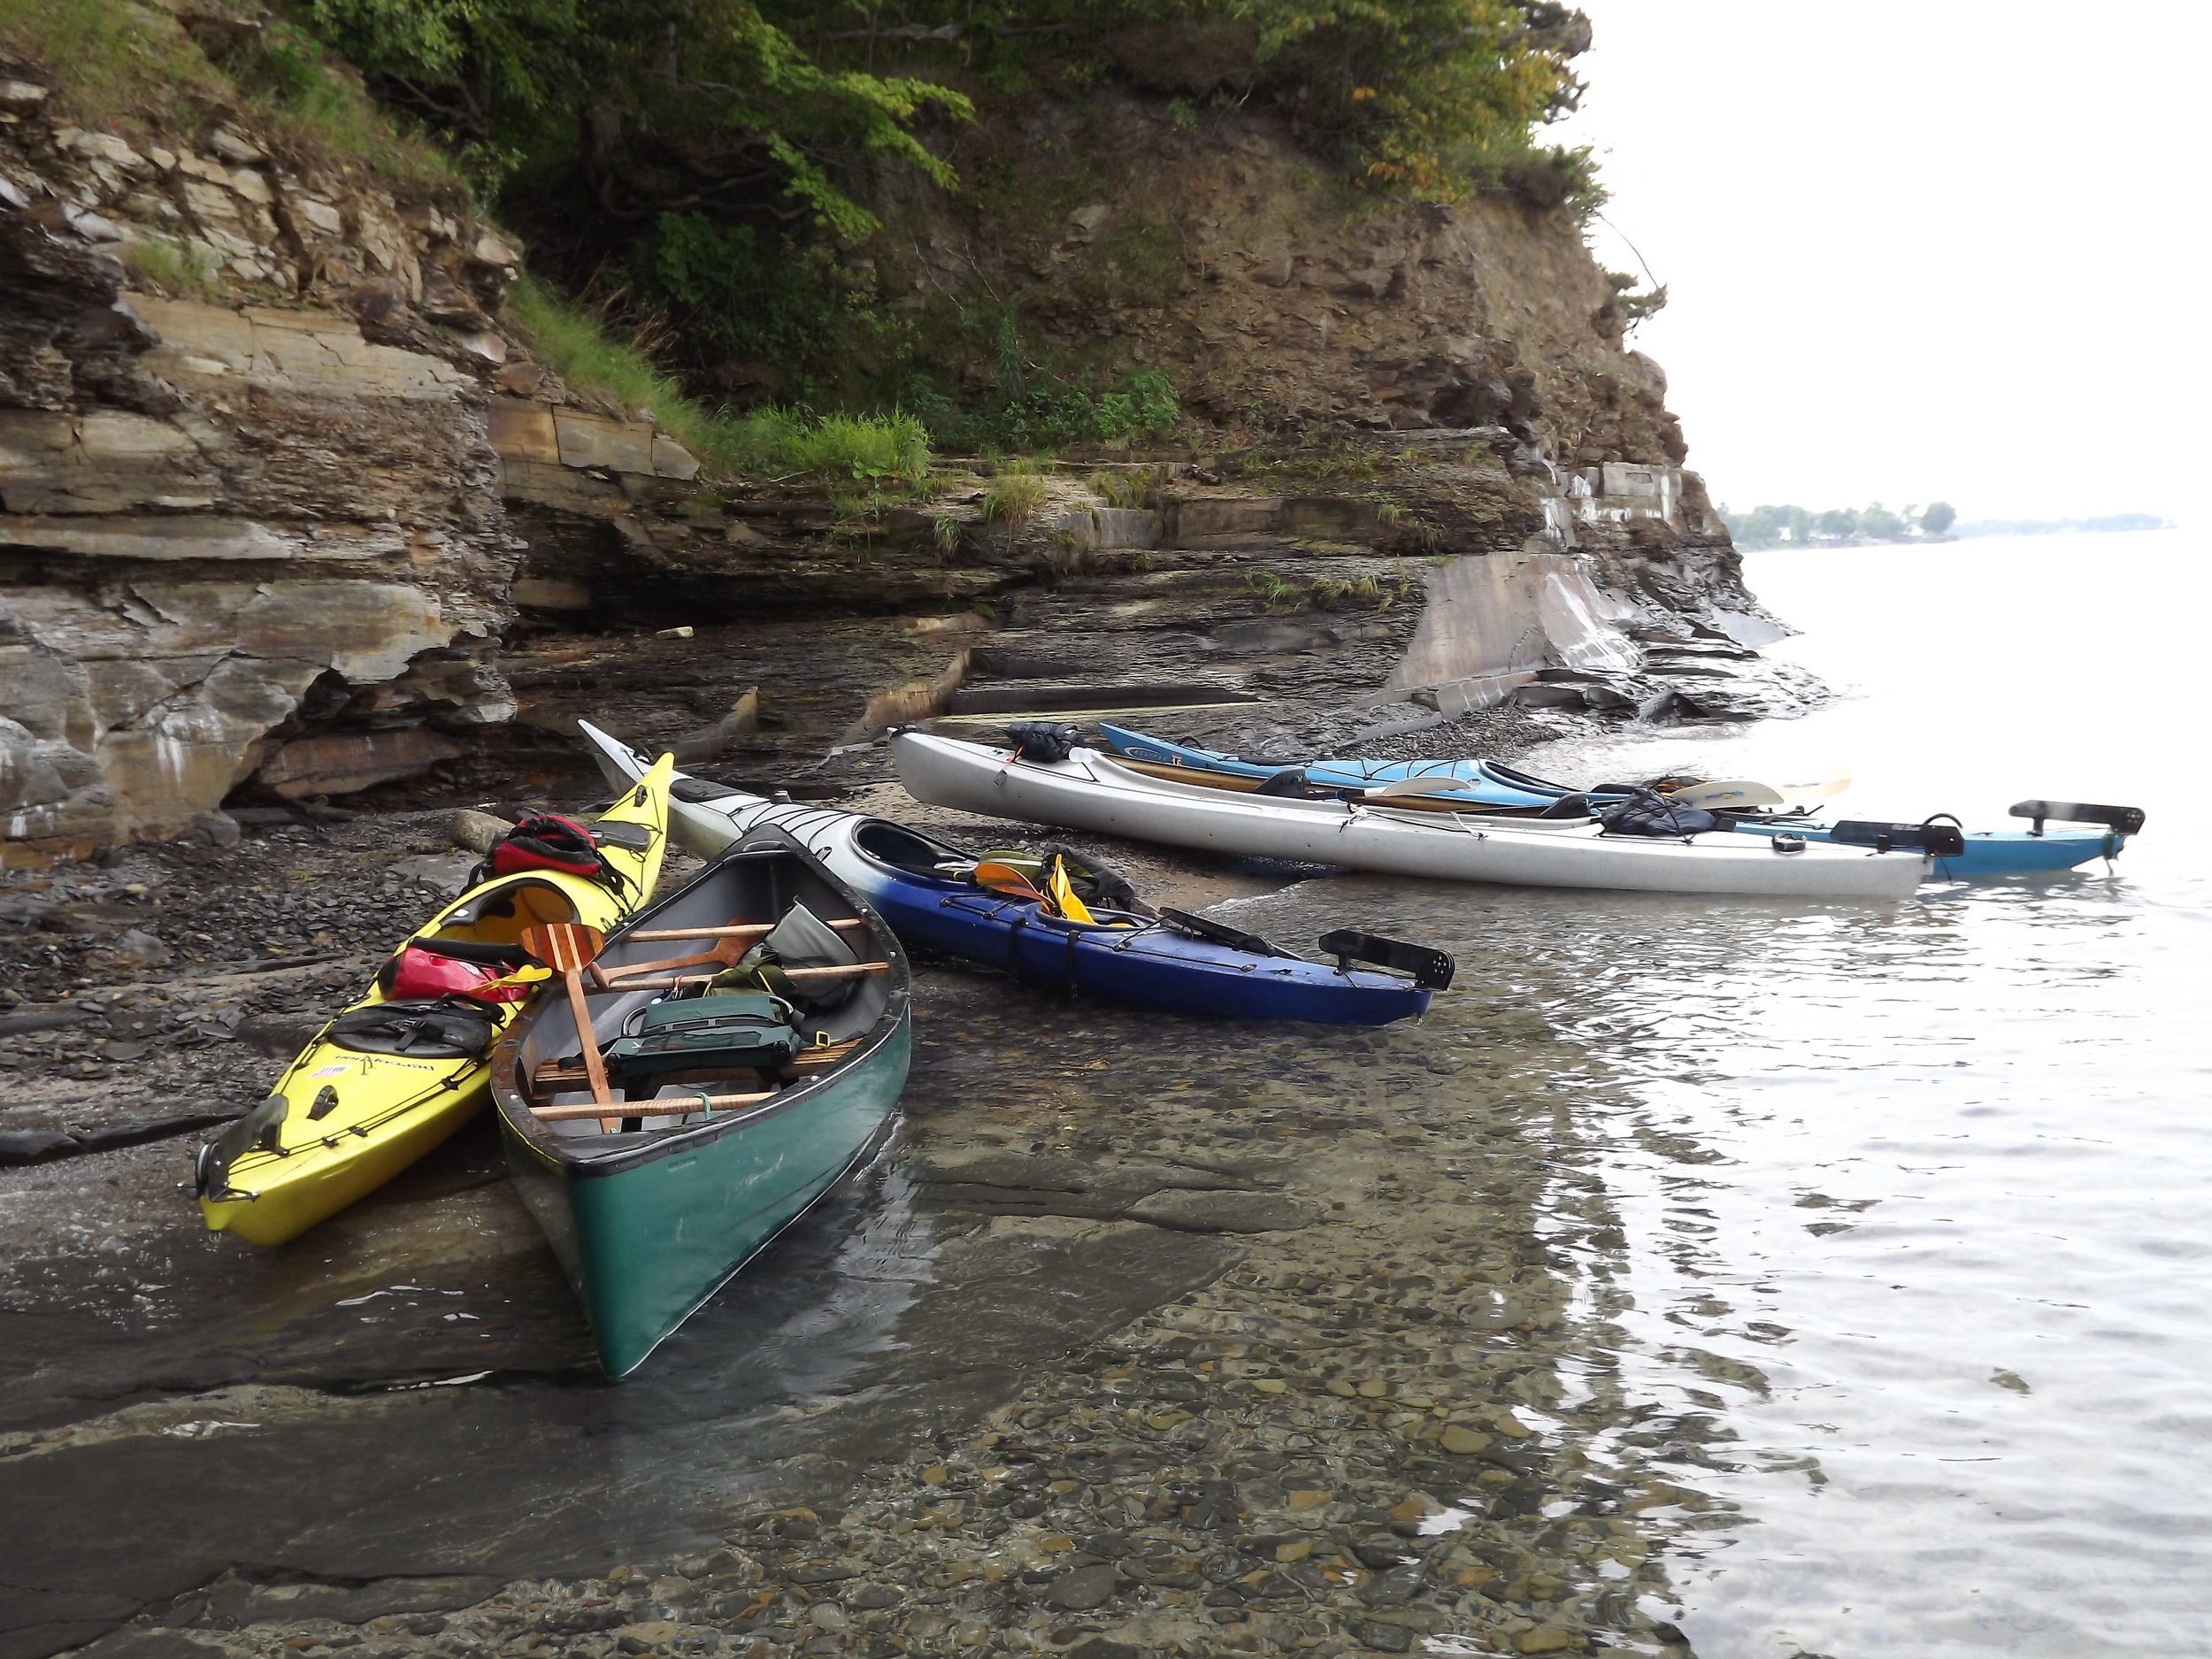 My canoe and our kayaks all pulled up to shore near a small waterfall that is about a mile or so down the beach from my sisters' house on Lake Erie.